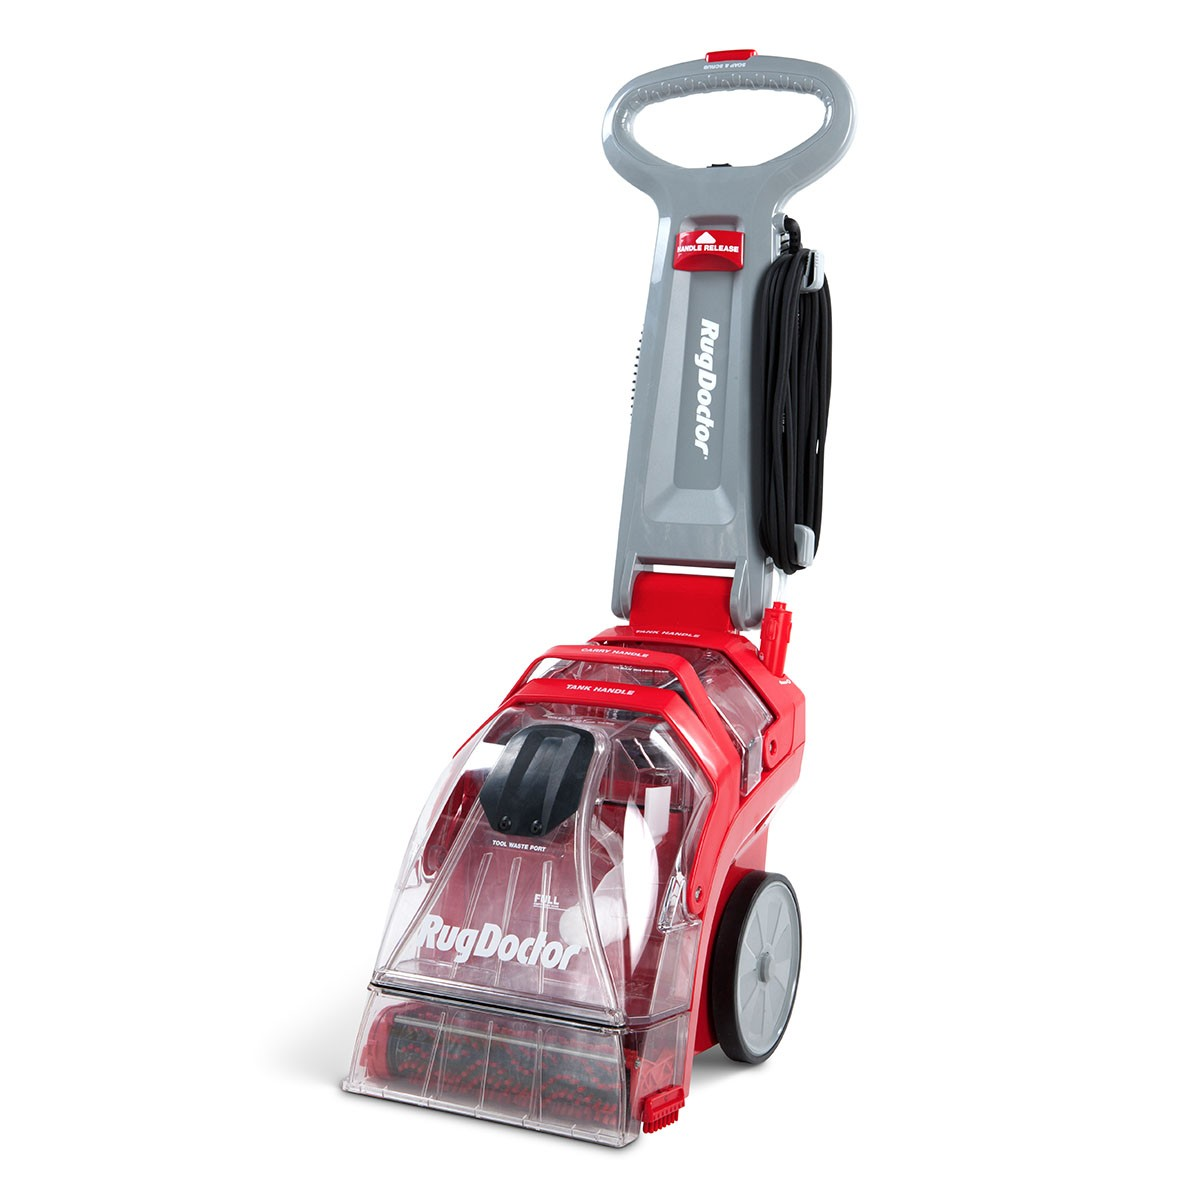 Owners Manuals Carpet Cleaning Machines Hardwood Floor